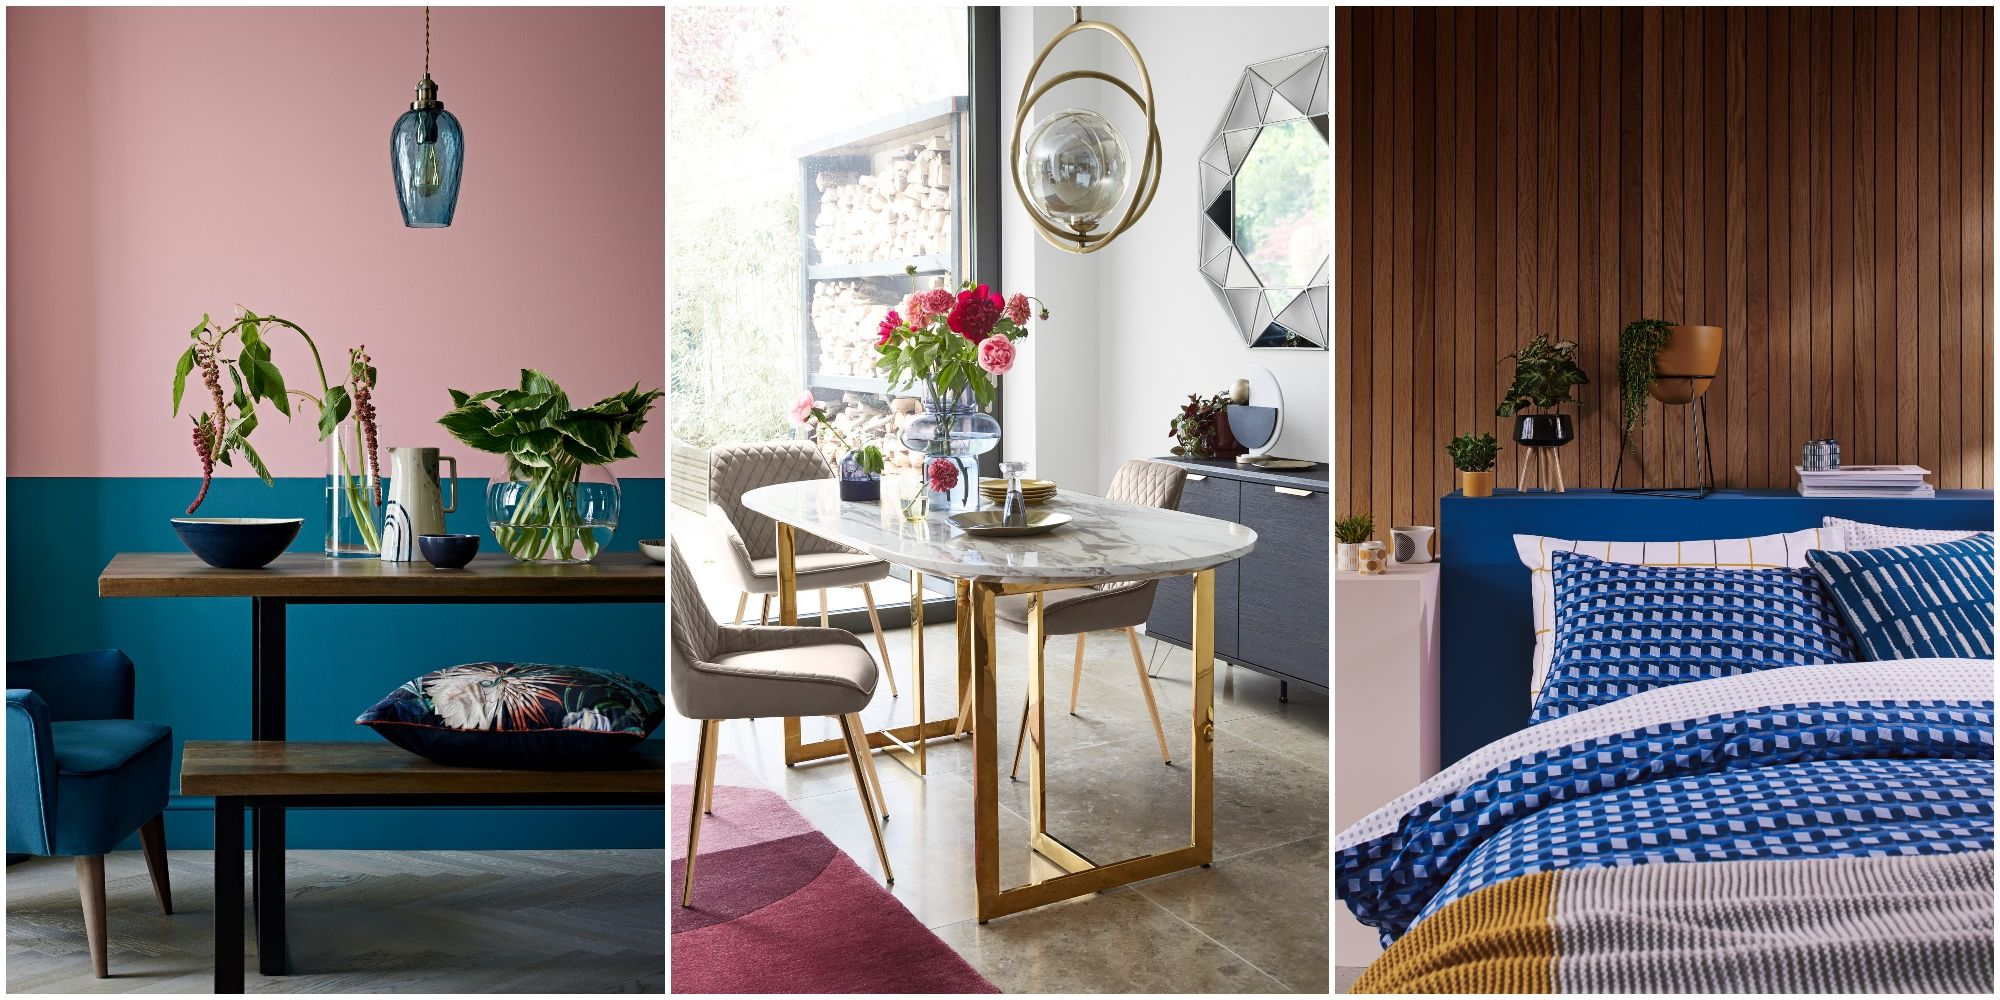 10 Best Autumn/Winter 2019 Interior Design Trends For Your Home